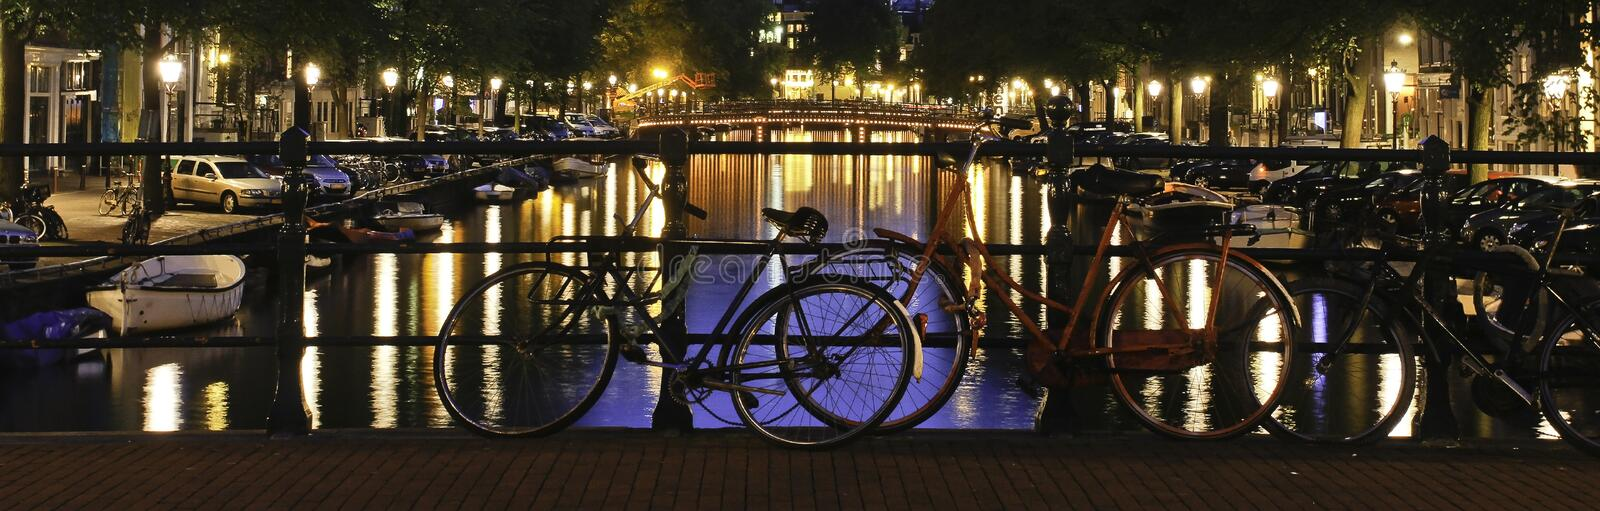 Amsterdam Night CANAL Street Scene stock photos